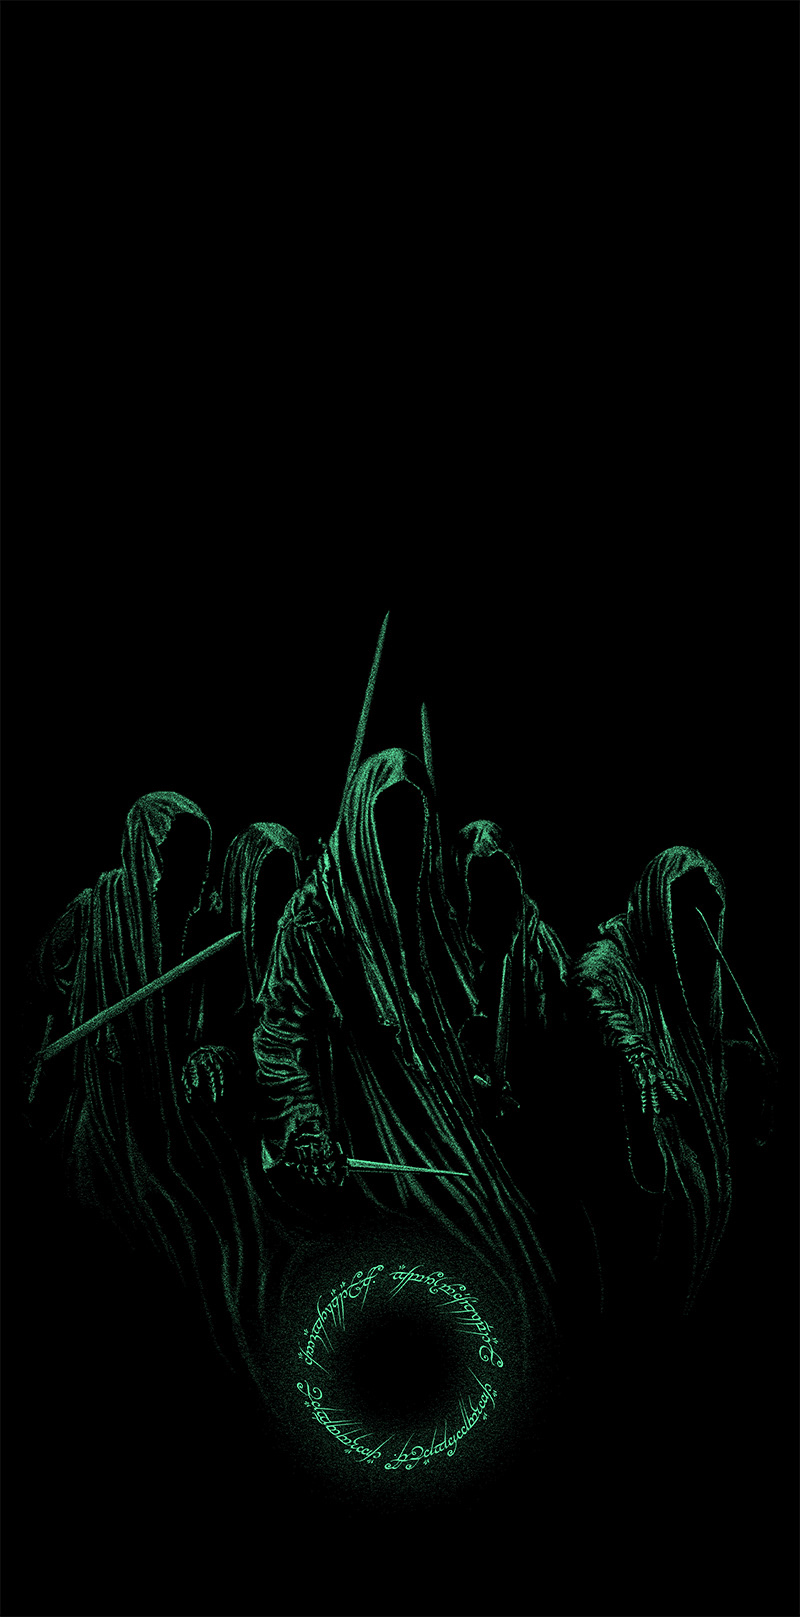 The Lord Of The Rings Marko Manev